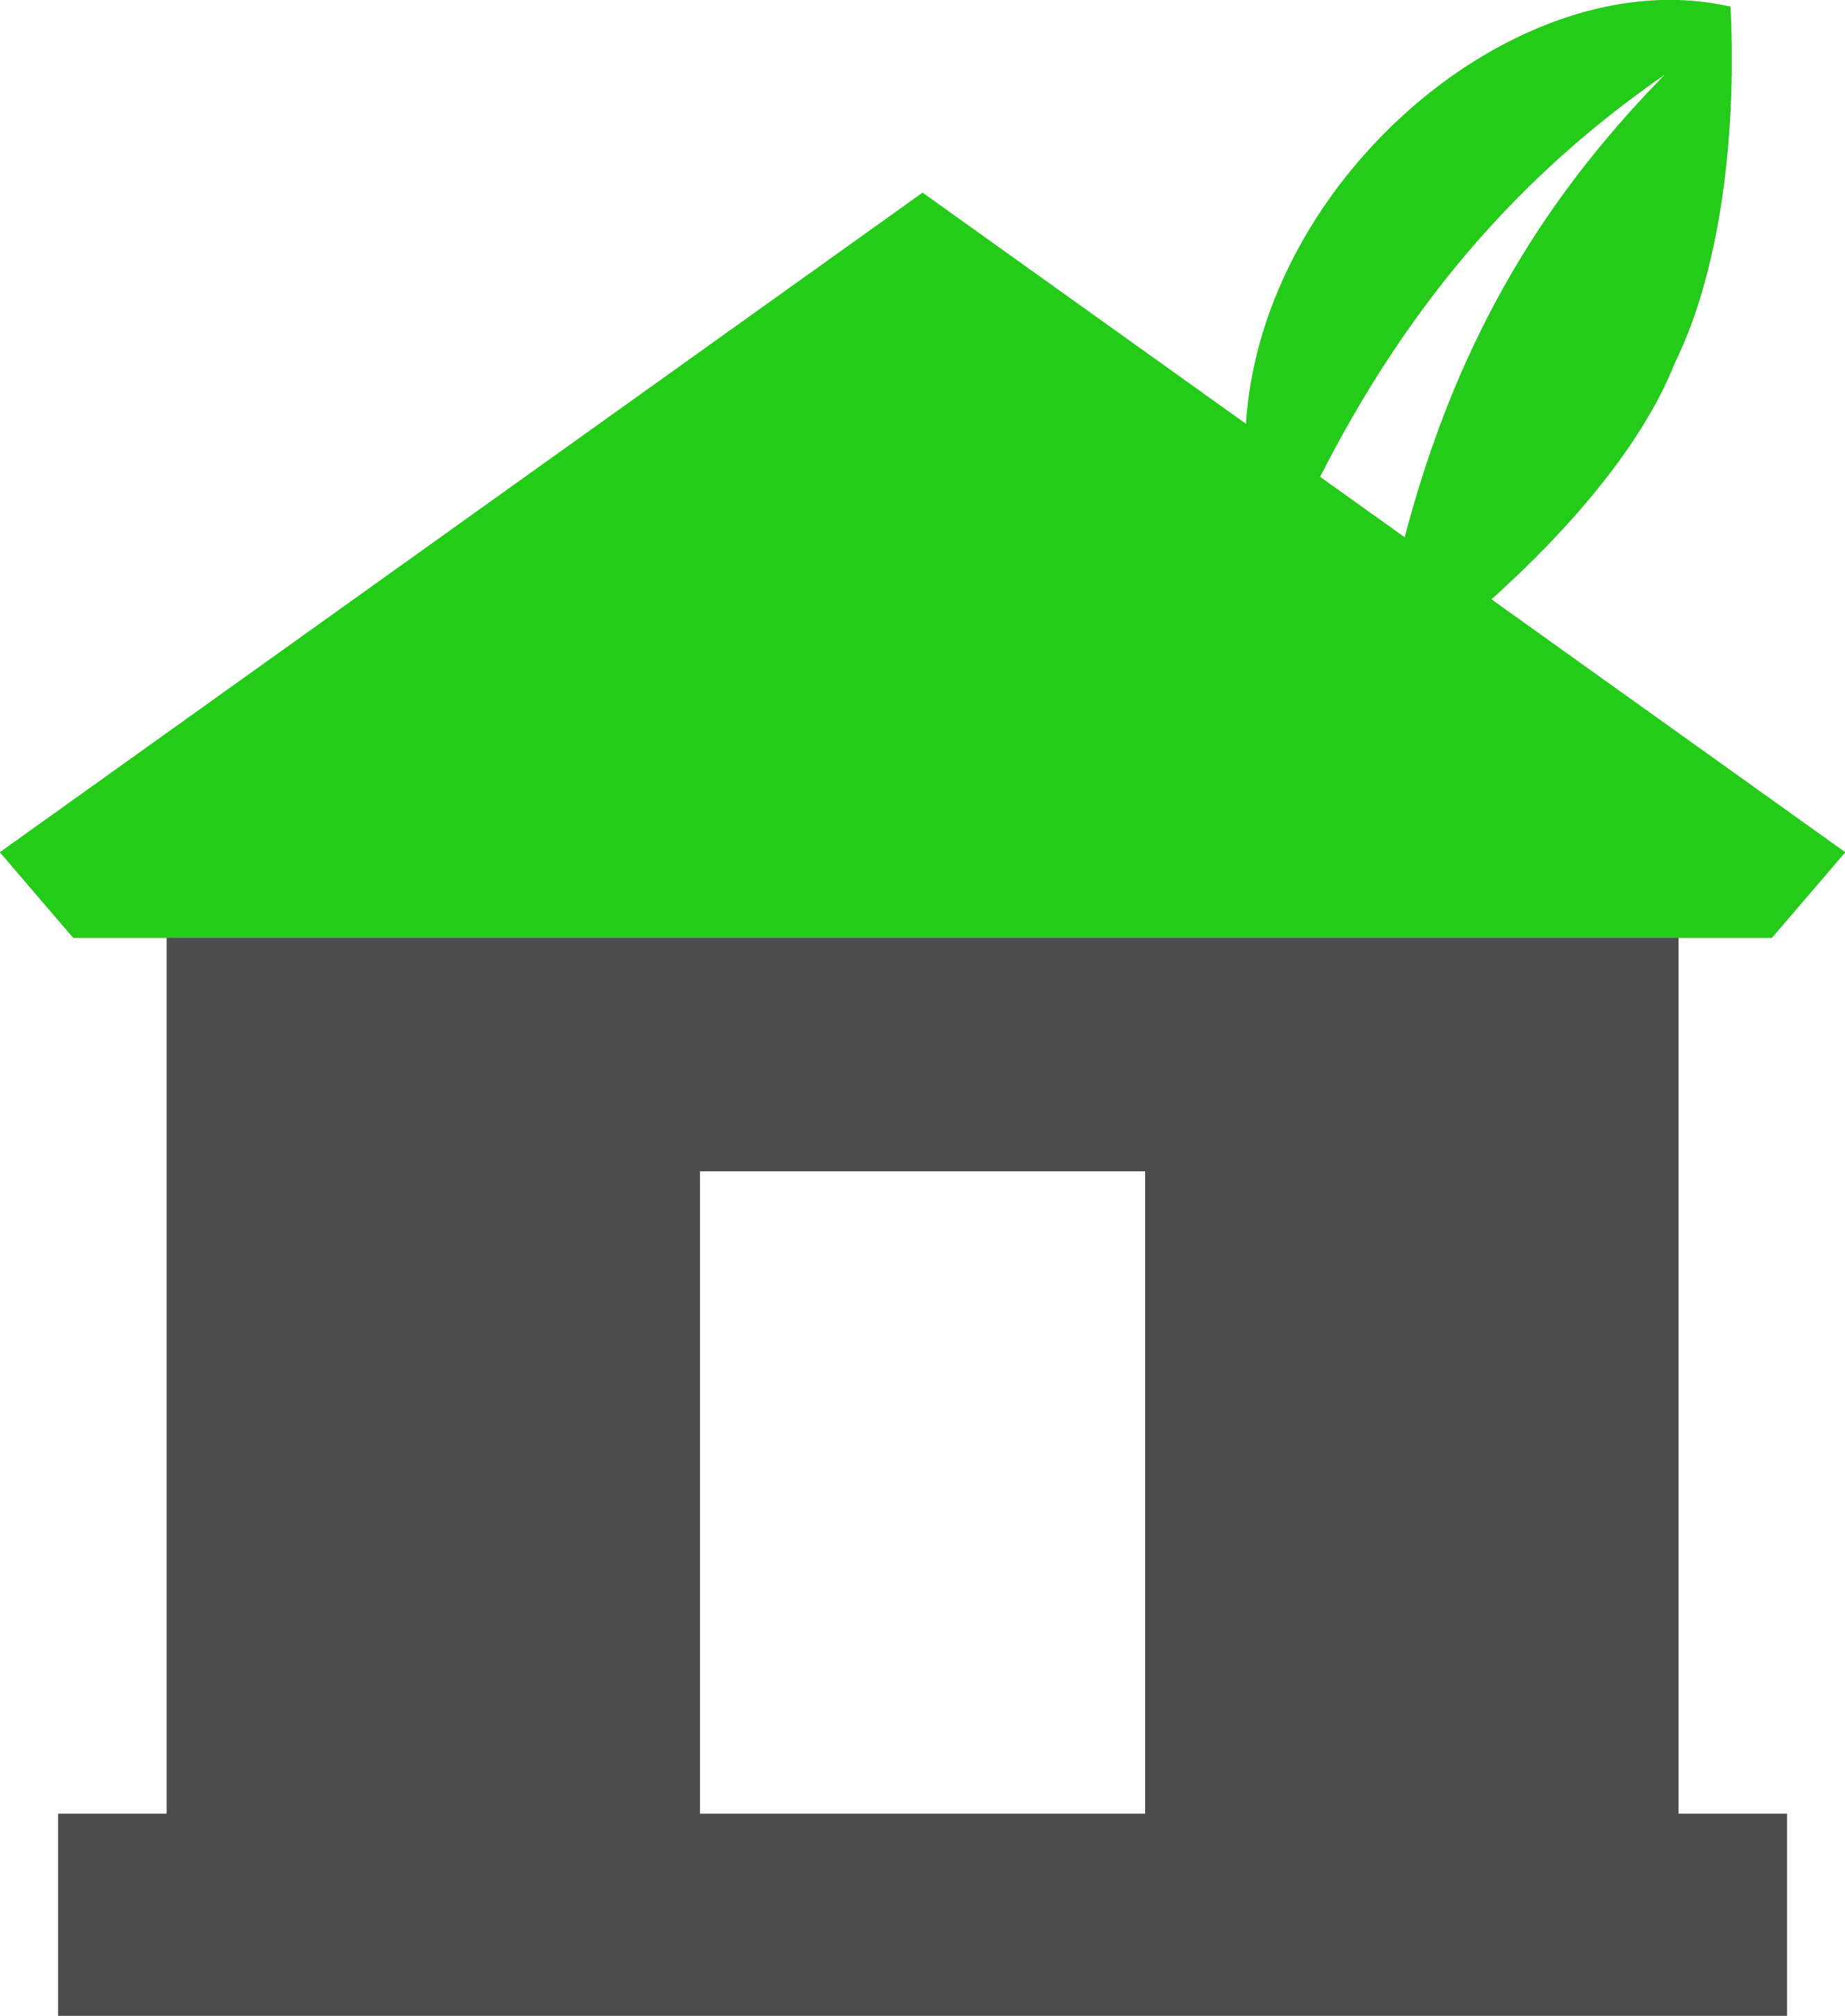 Environment clipart sustainable house. Renovation as a solution